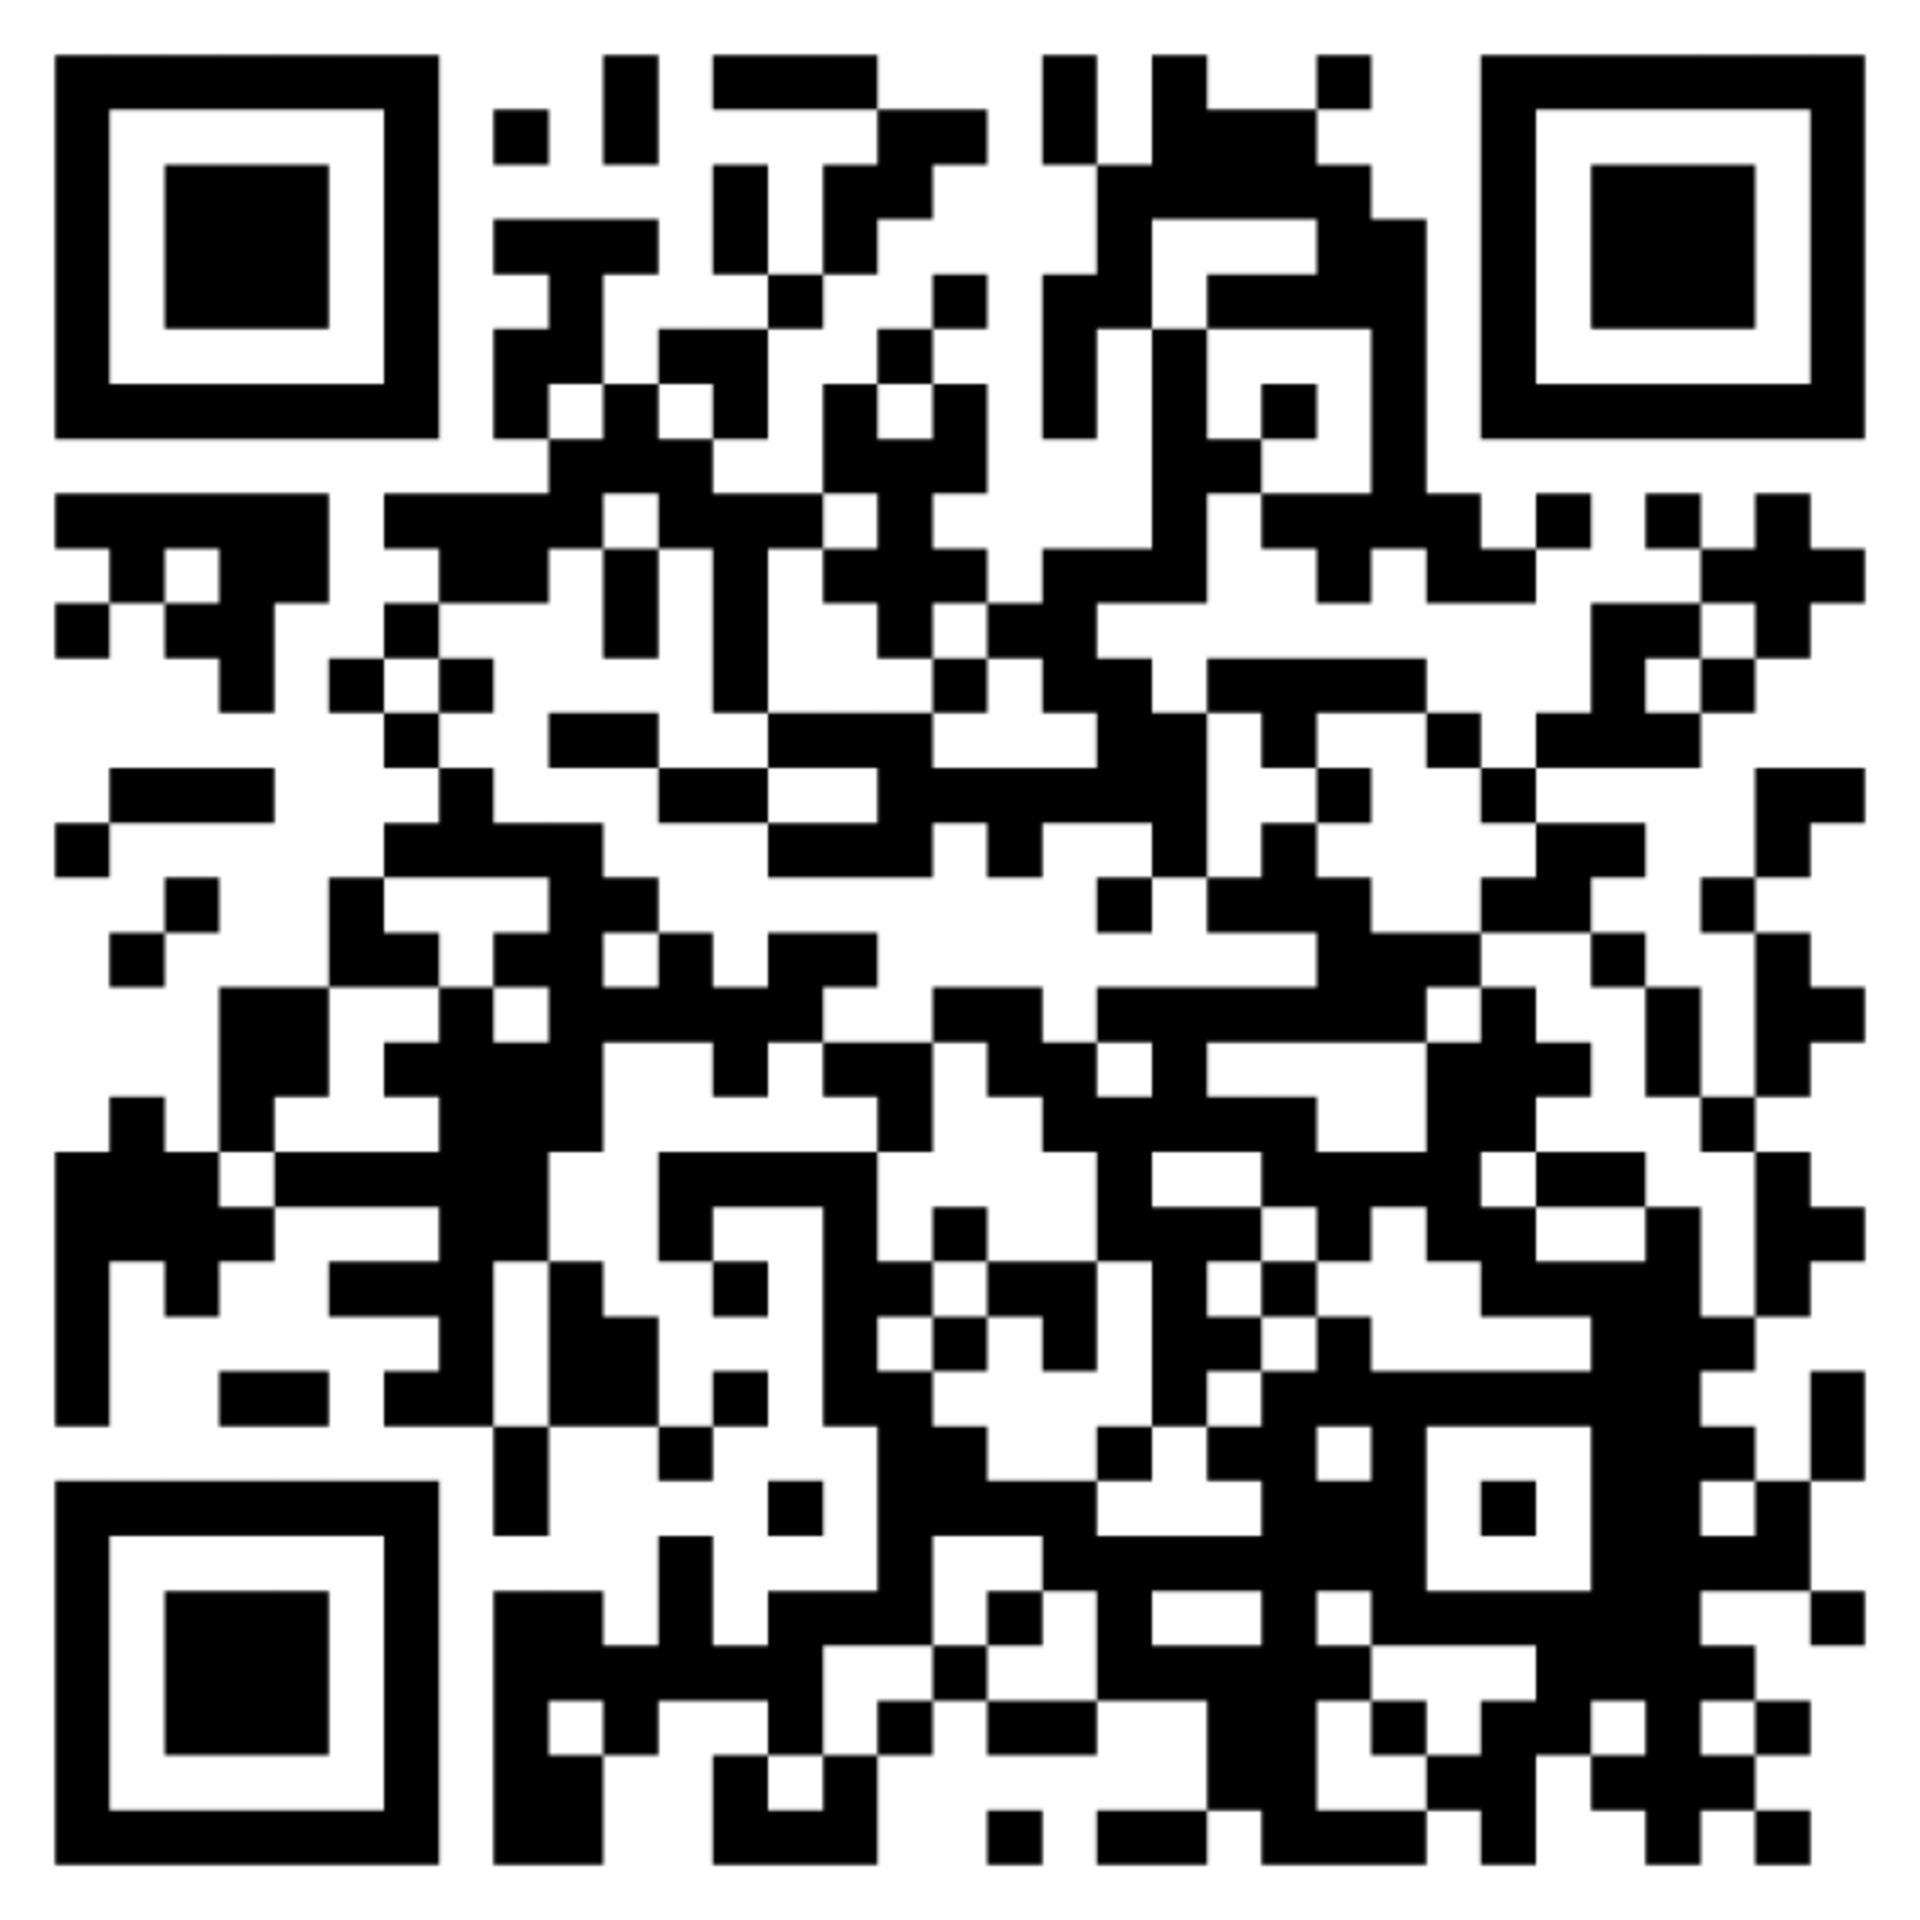 QR code for downloading the augmented reality app